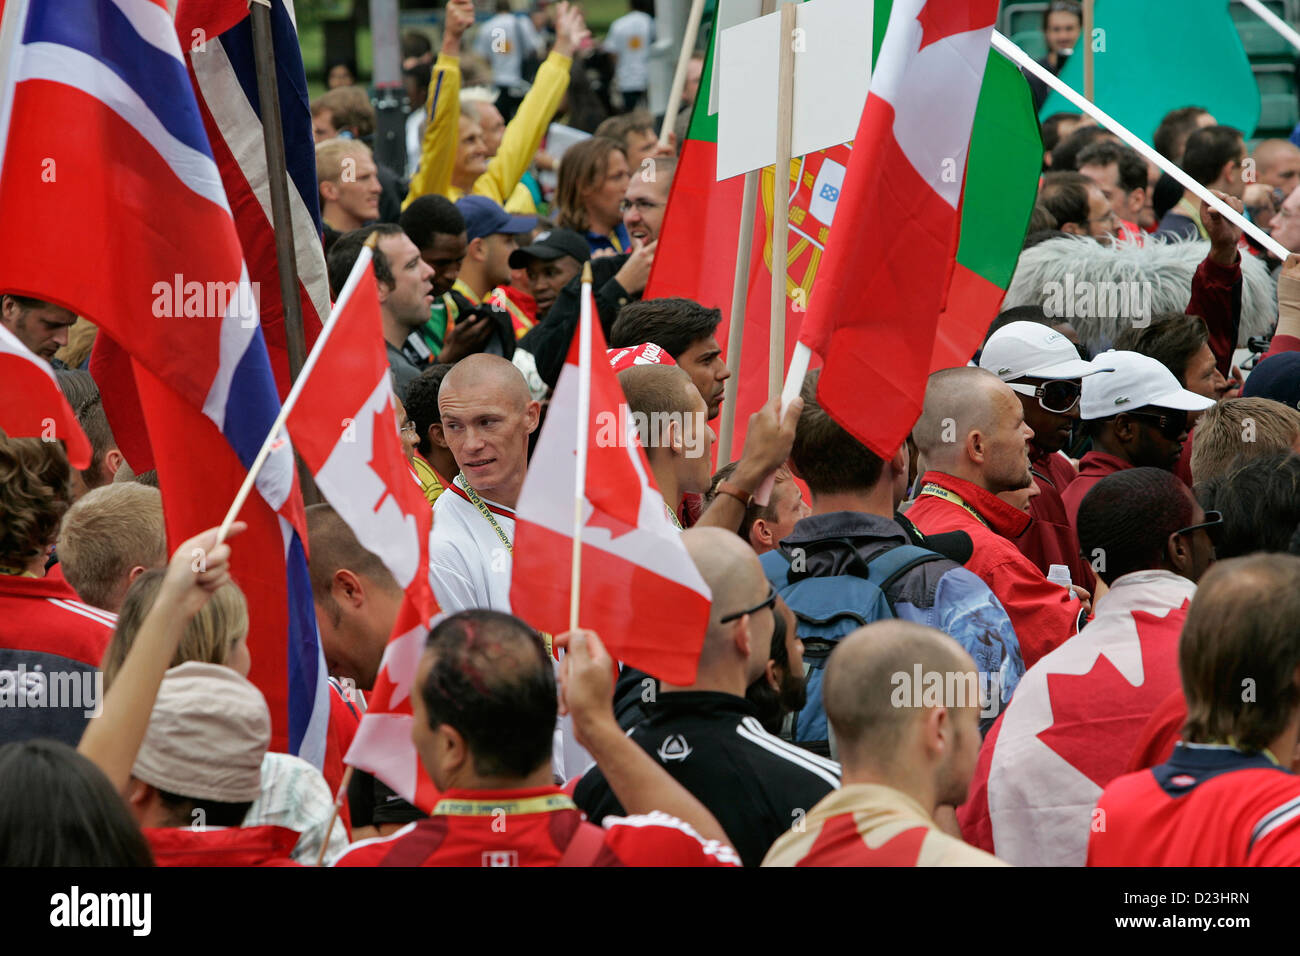 Players and fans parade with their national flags at Homeless World Cup football tournament held in Edinburgh, Scotland - Stock Image